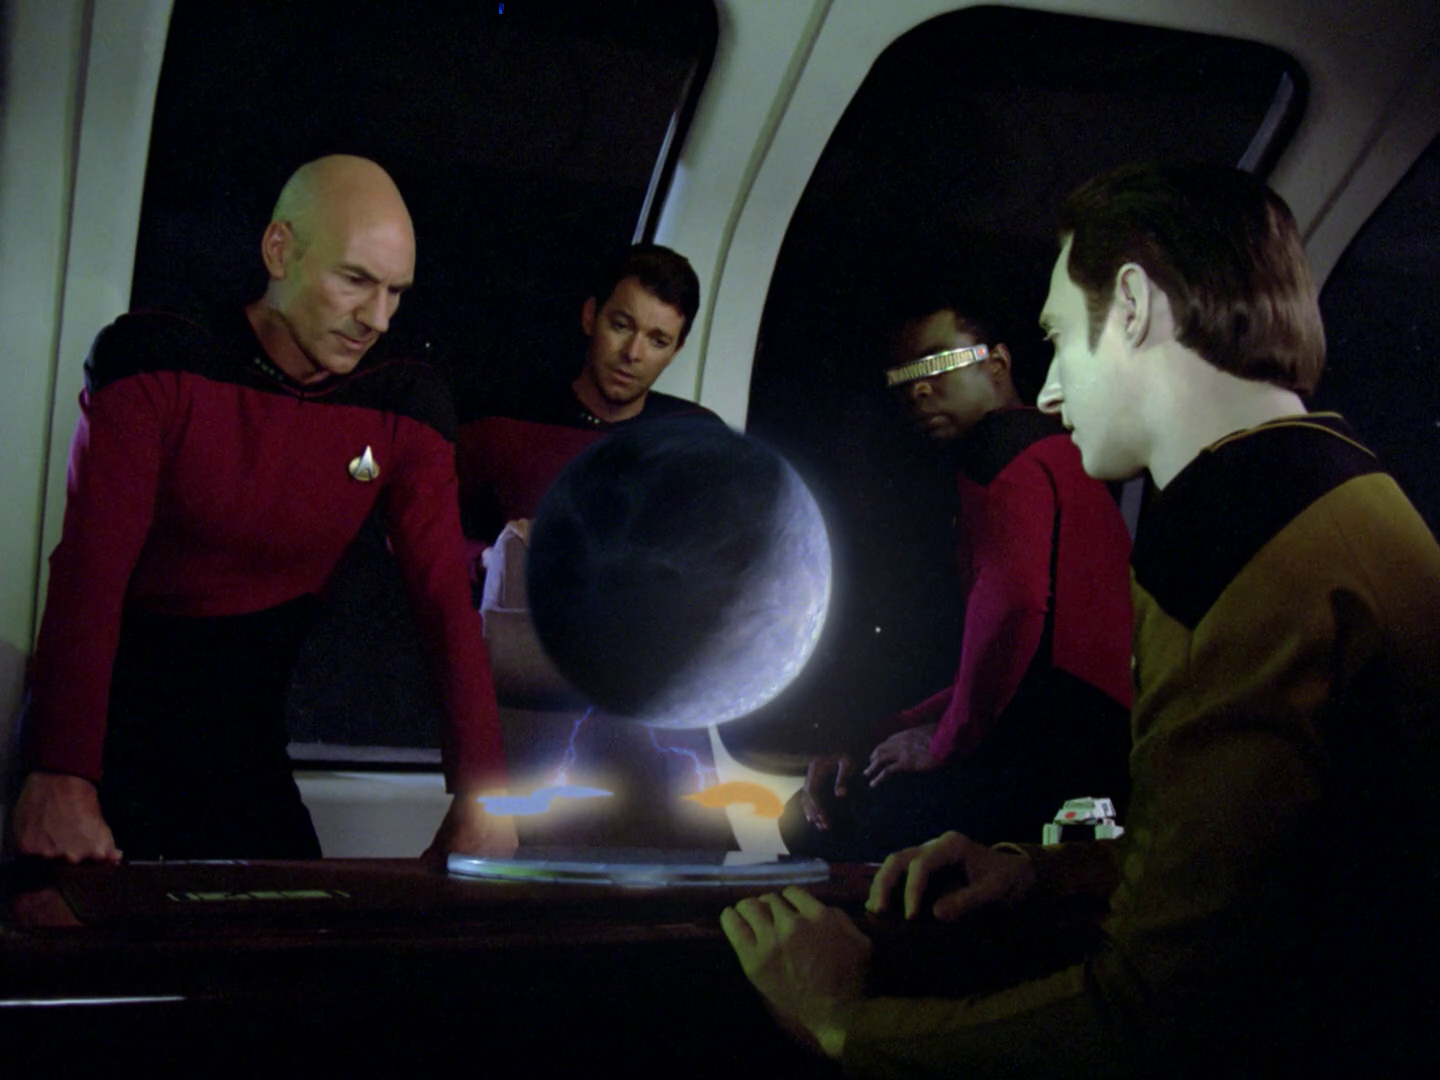 Holographic Projector Memory Alpha The Star Trek Wiki